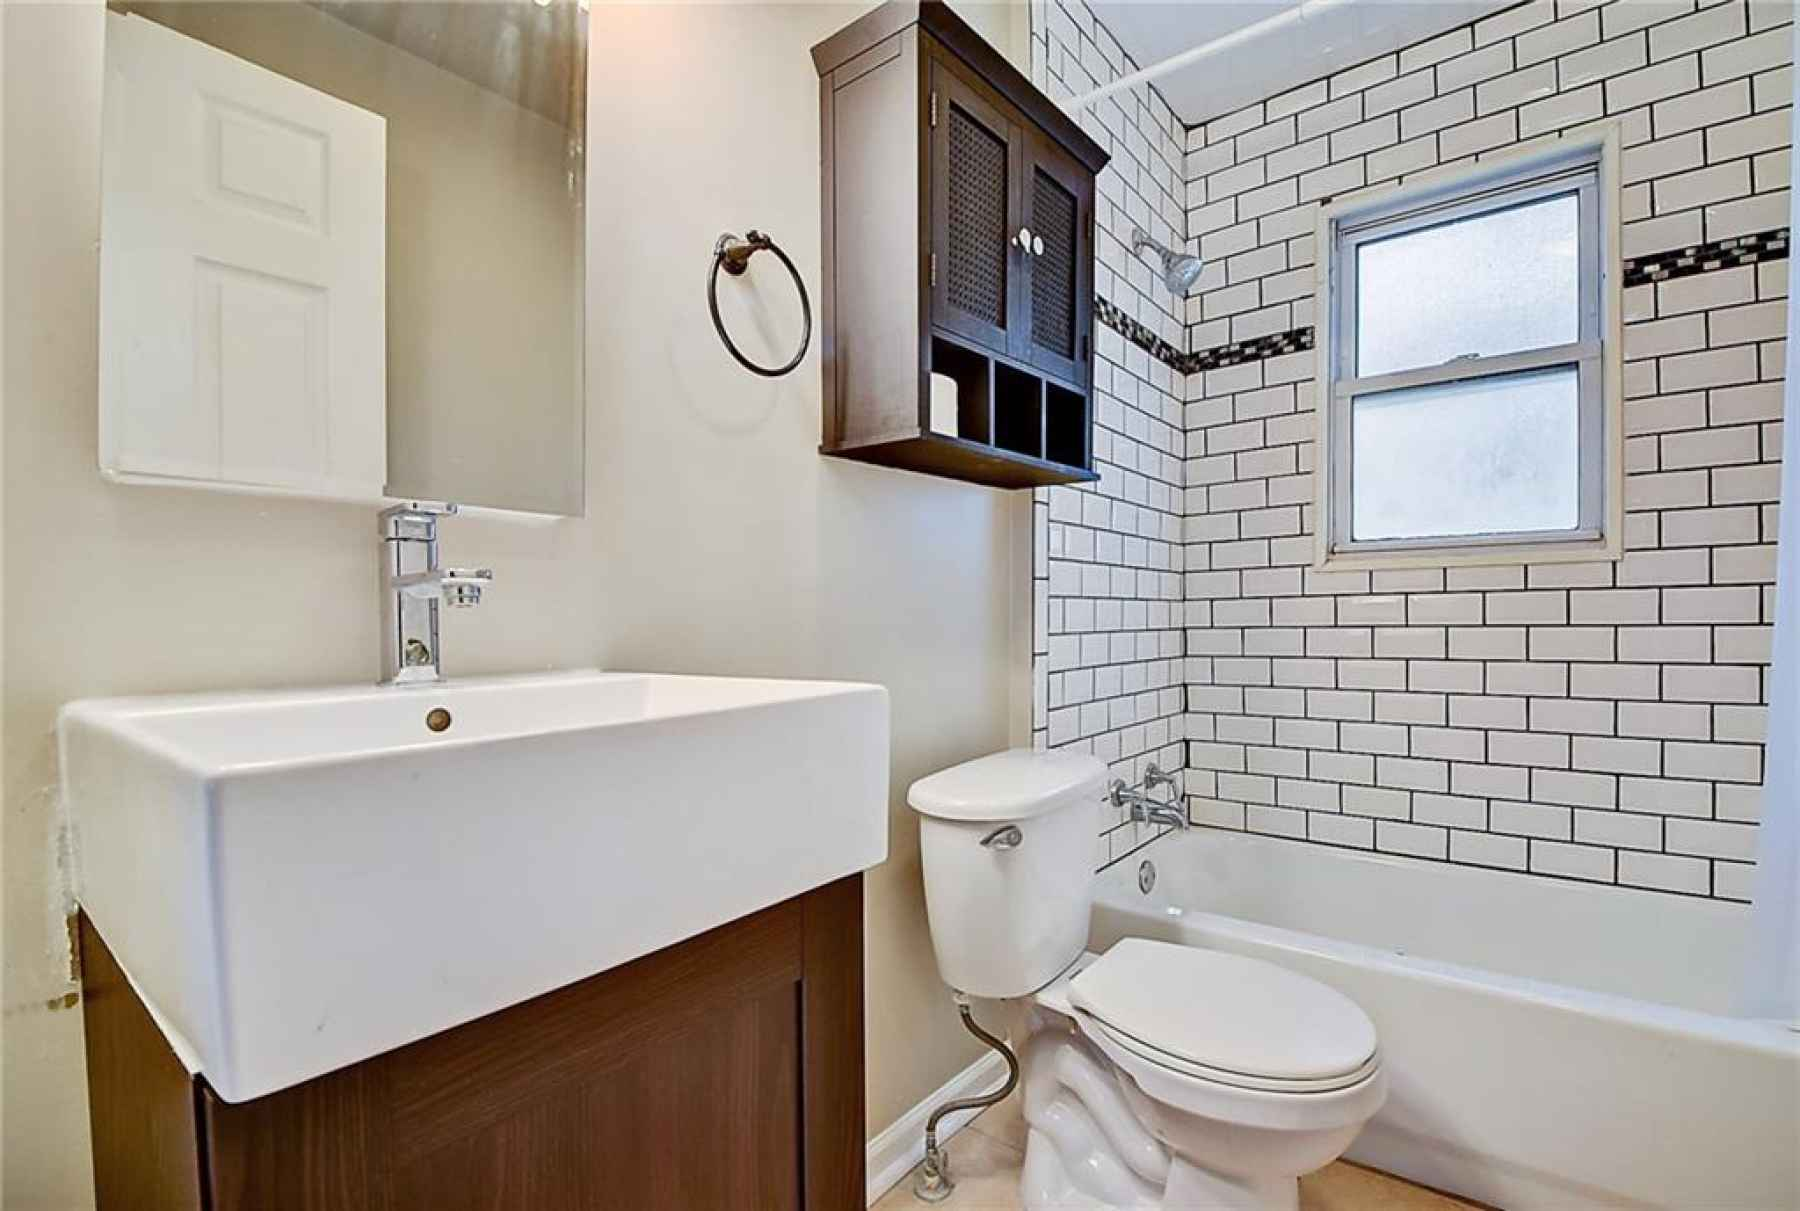 Full bathroom located in between the two bedrooms.